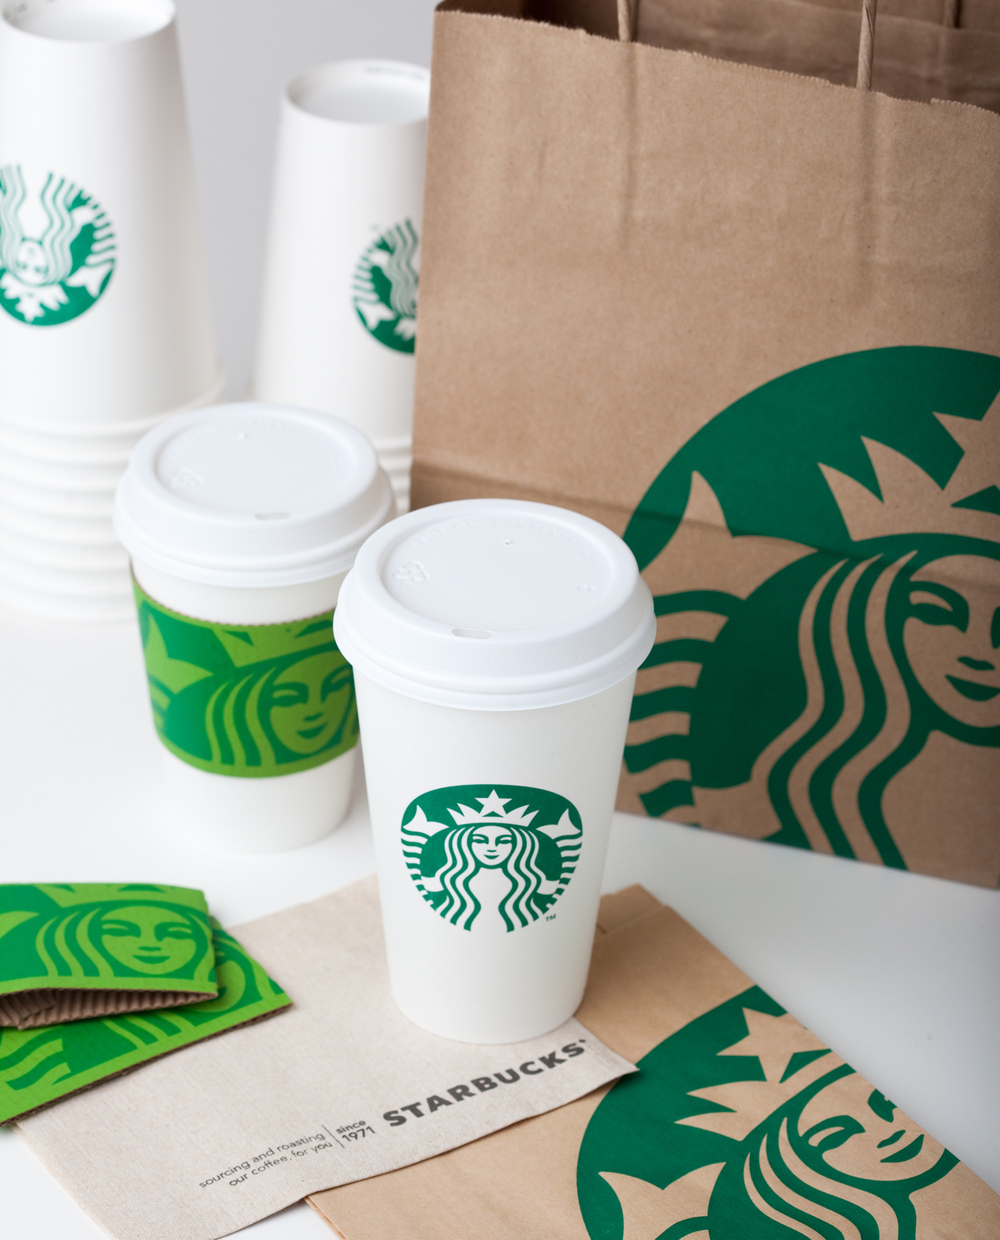 starbucks-collection.jpg